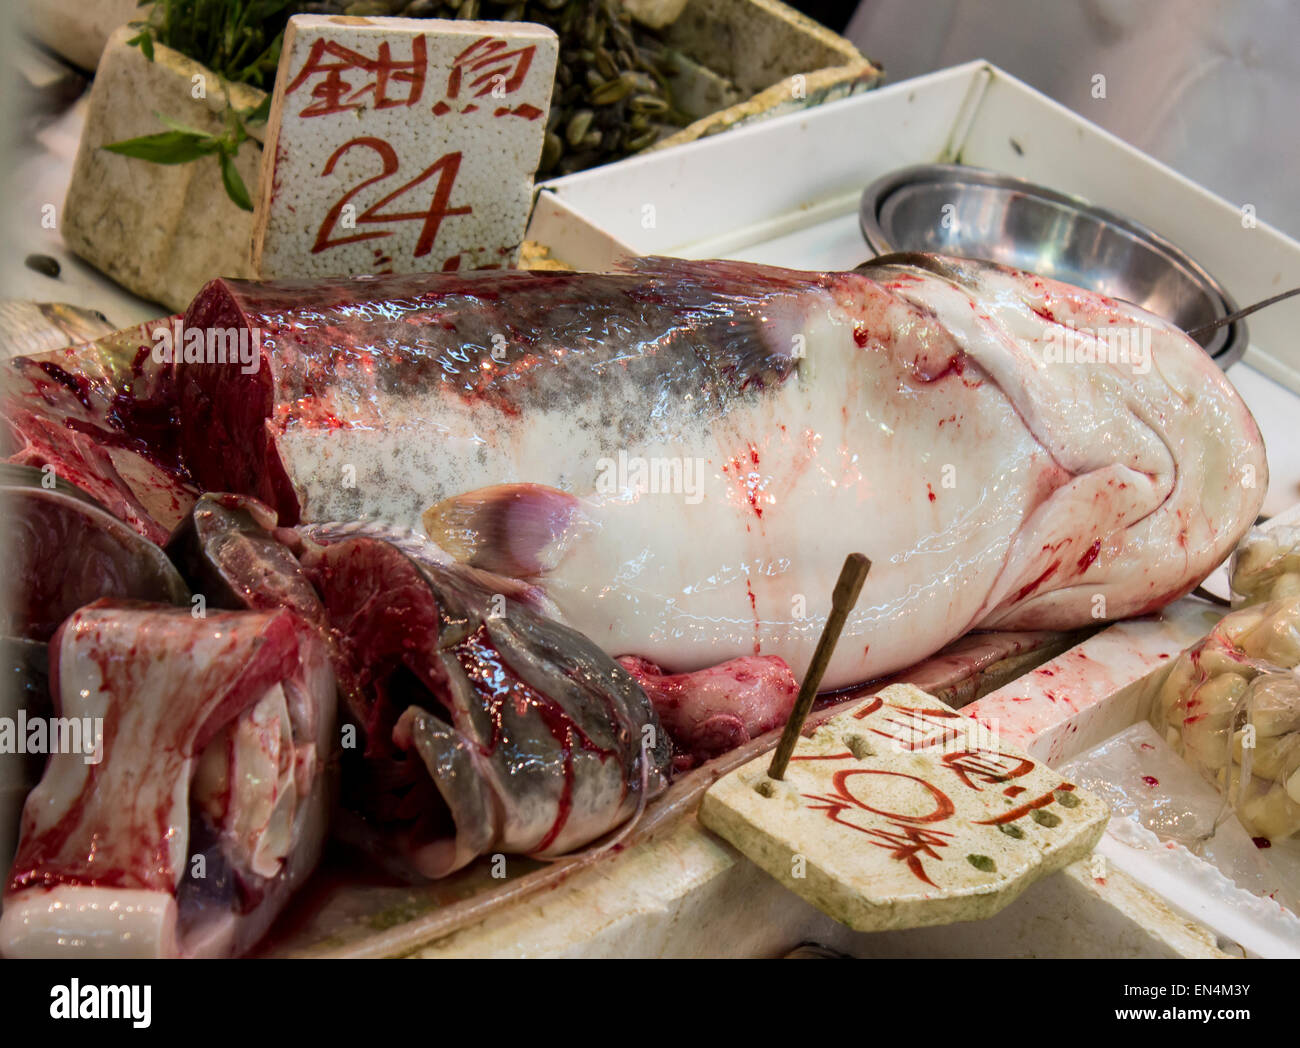 Wet Market Hong Kong China fish head body parts wet blood bloody slimy slime selling sale tourists food Asian bold - Stock Image